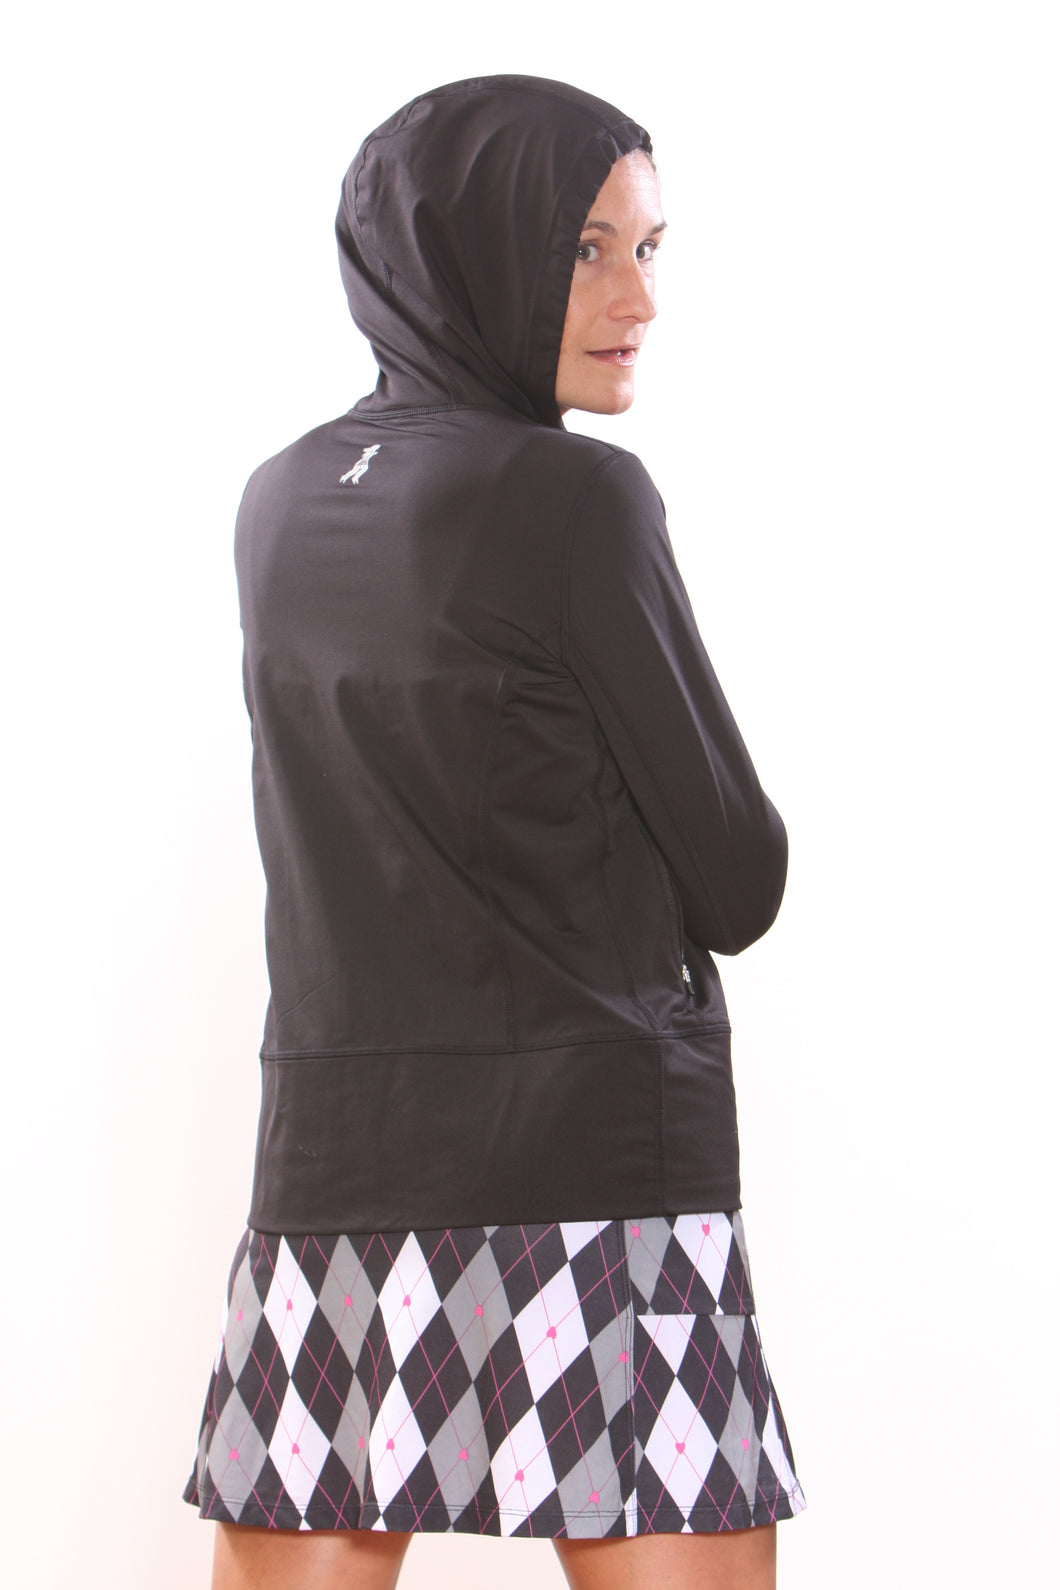 back view subzero hoody